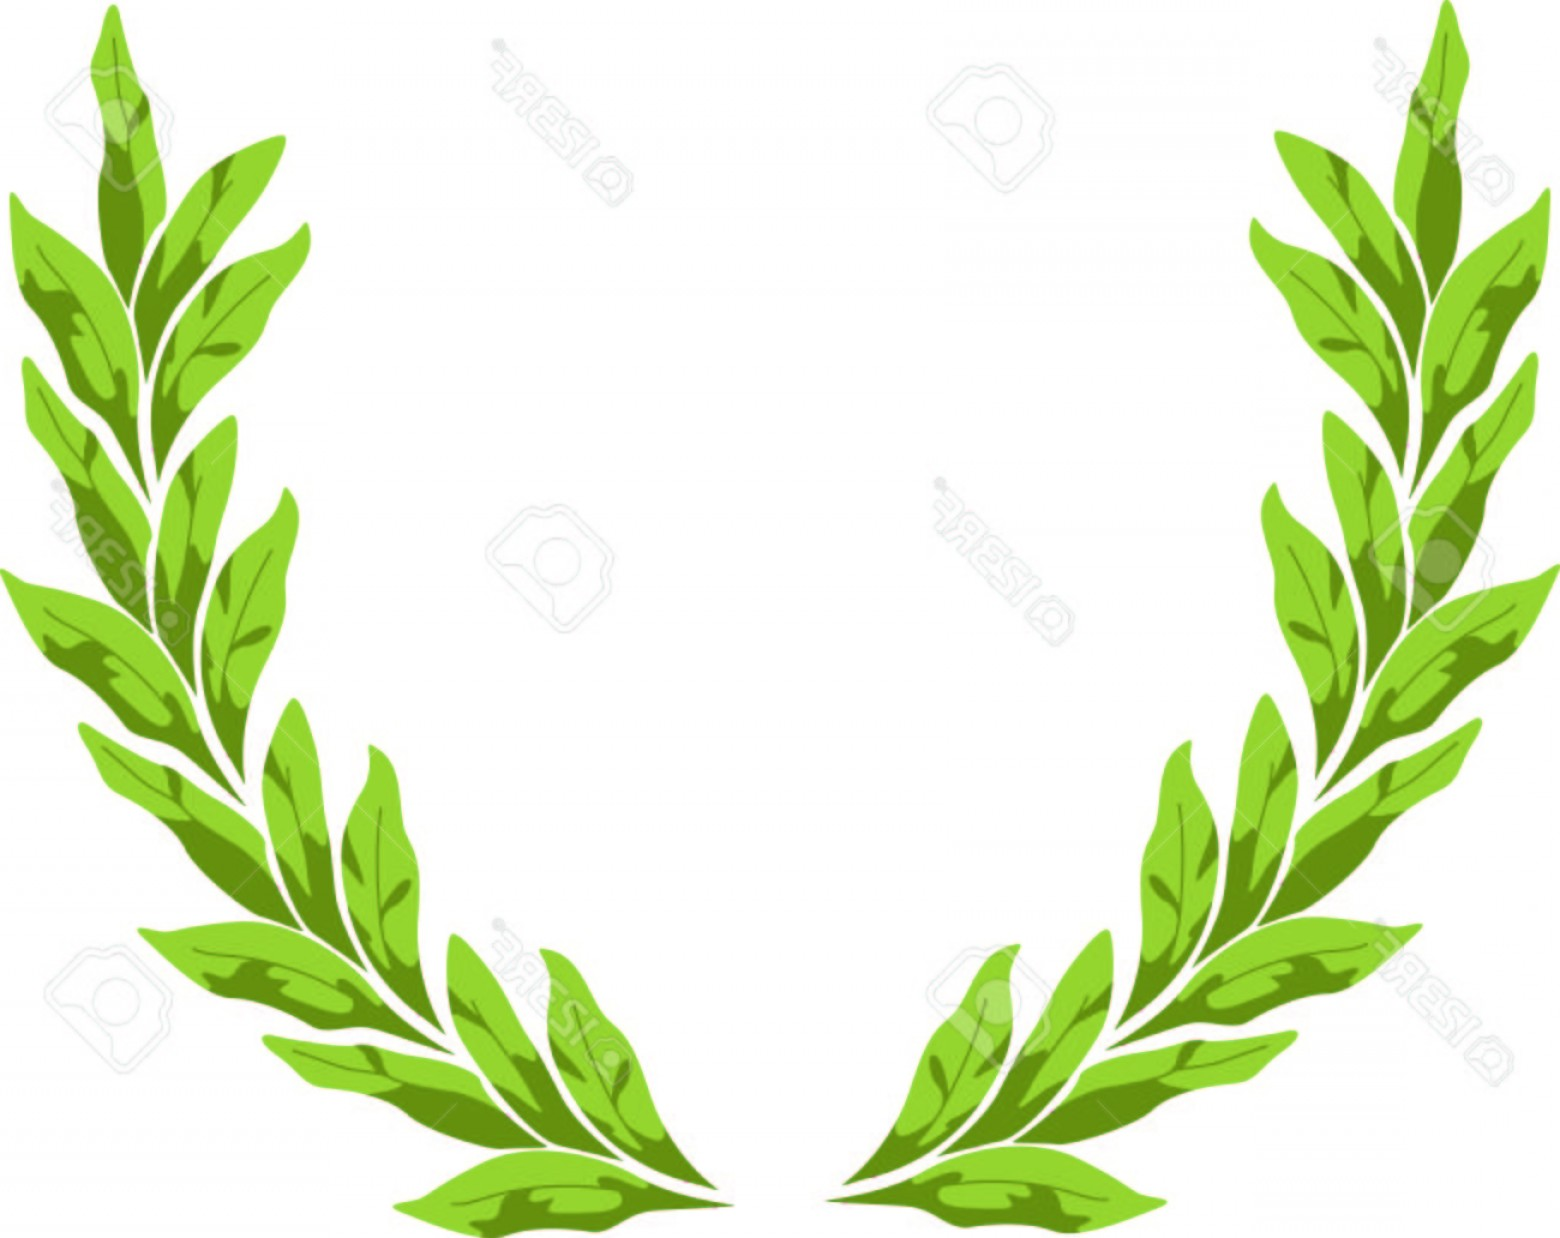 1560x1238 Tobacco Leaves Vector Arenawp